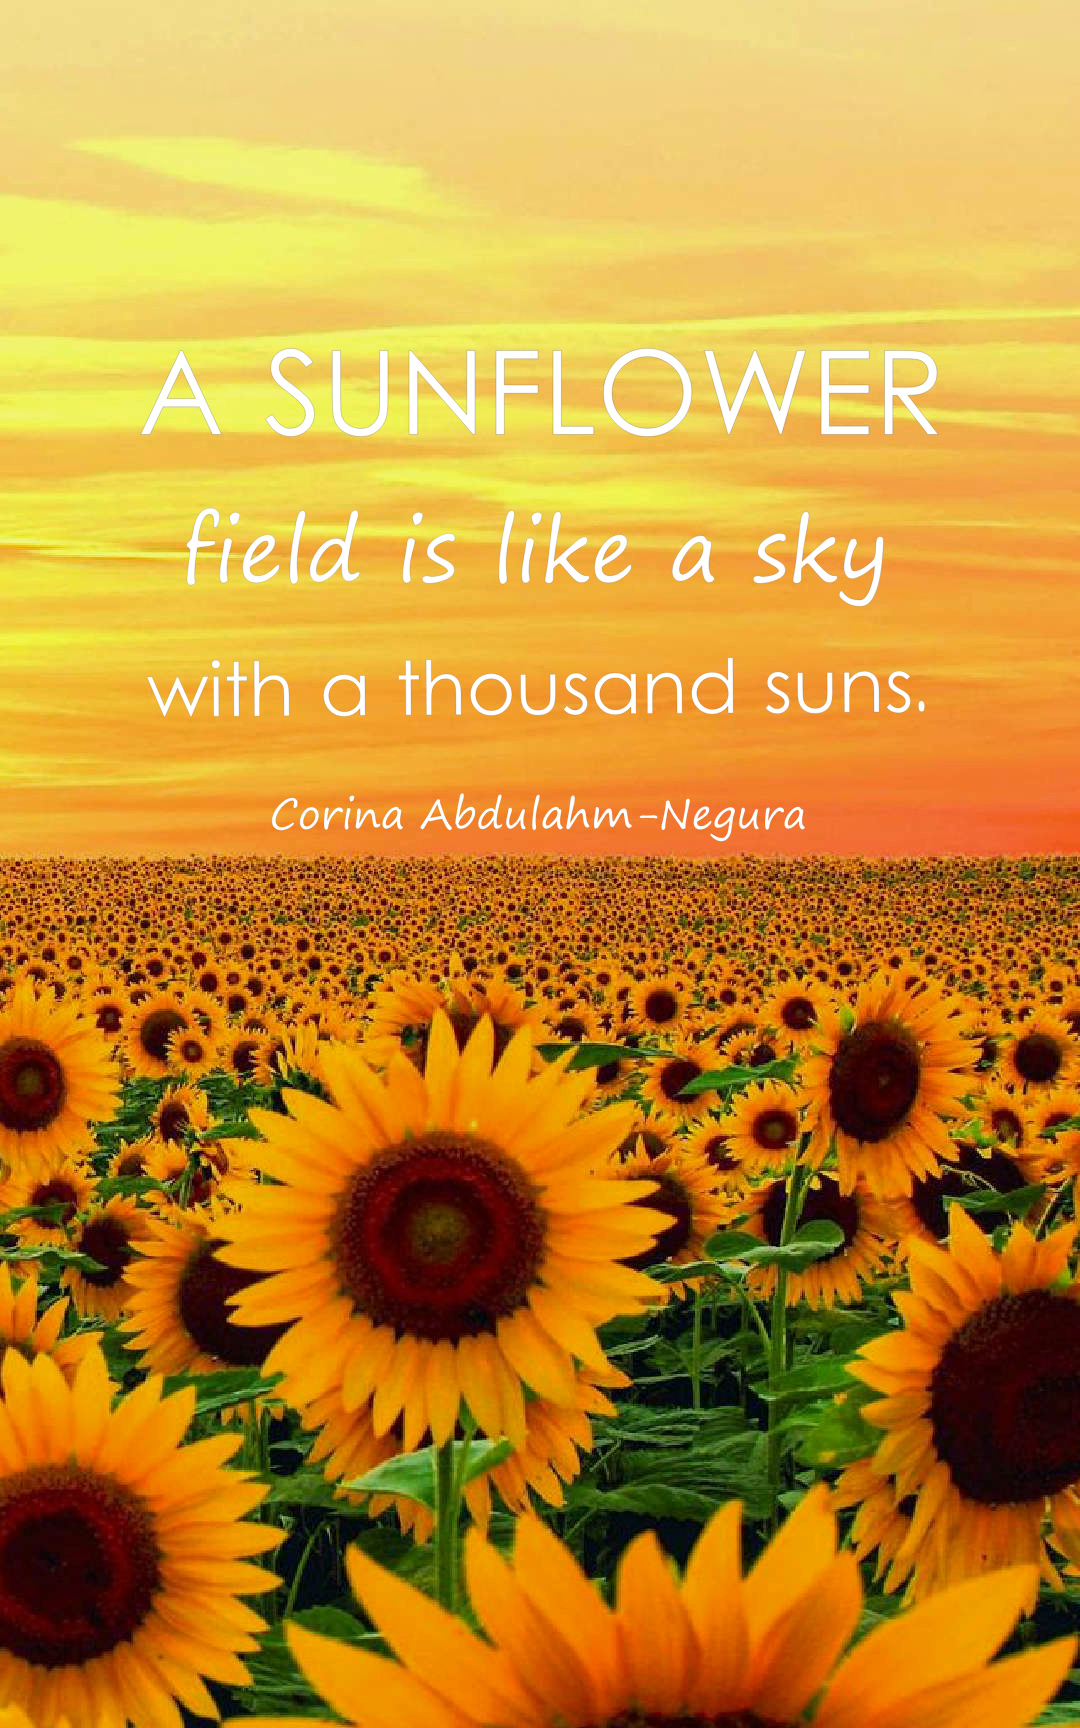 Sunflower Love Quotes : sunflower, quotes, Beautiful, Sunflower, Quotes, Images